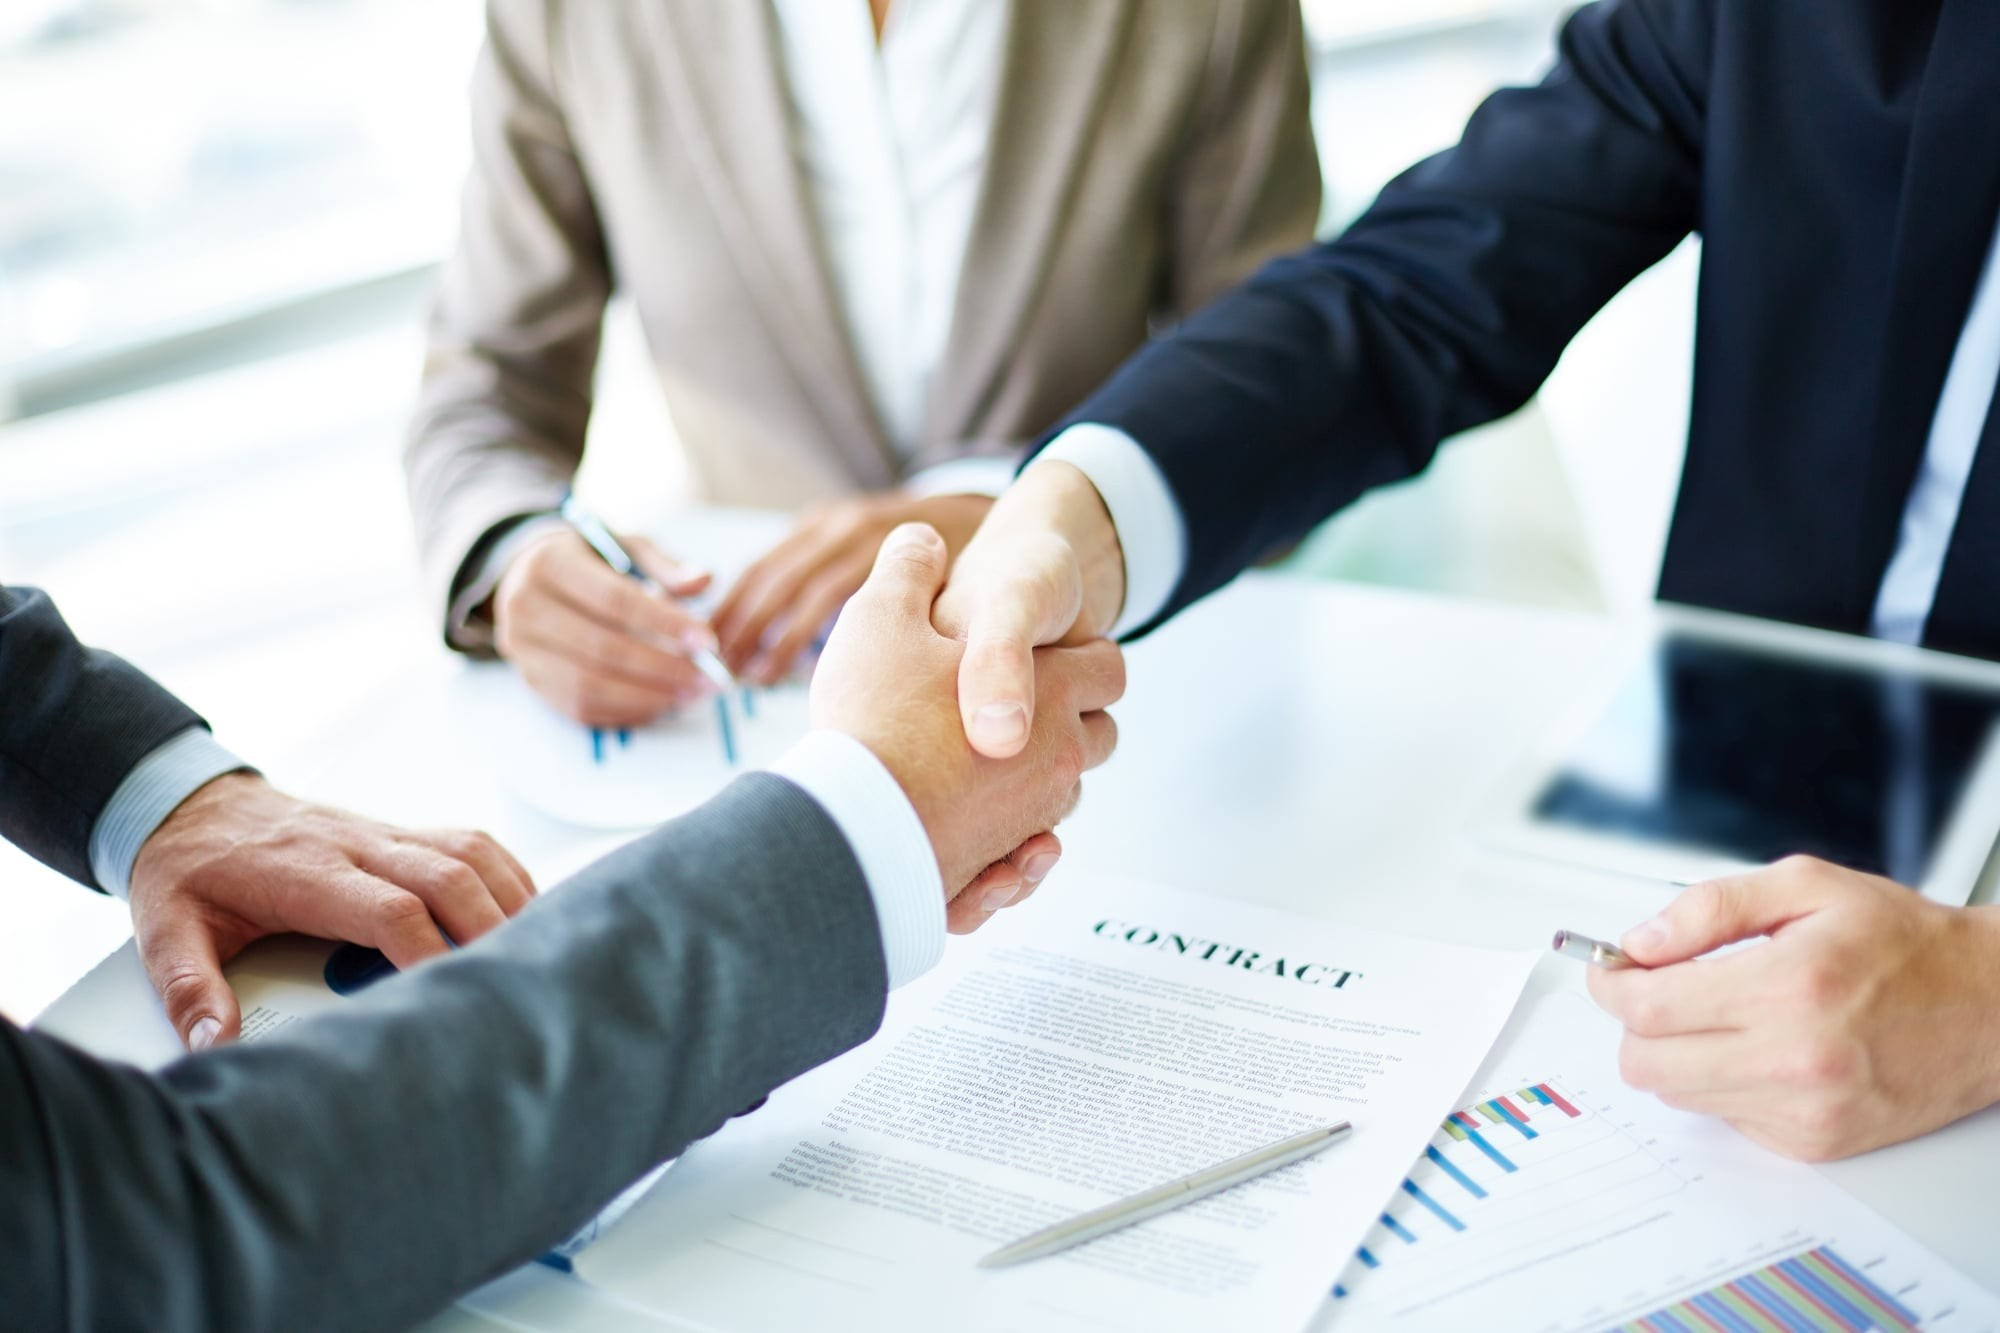 Dukagjin Sadrijaj agreement as a business consultant